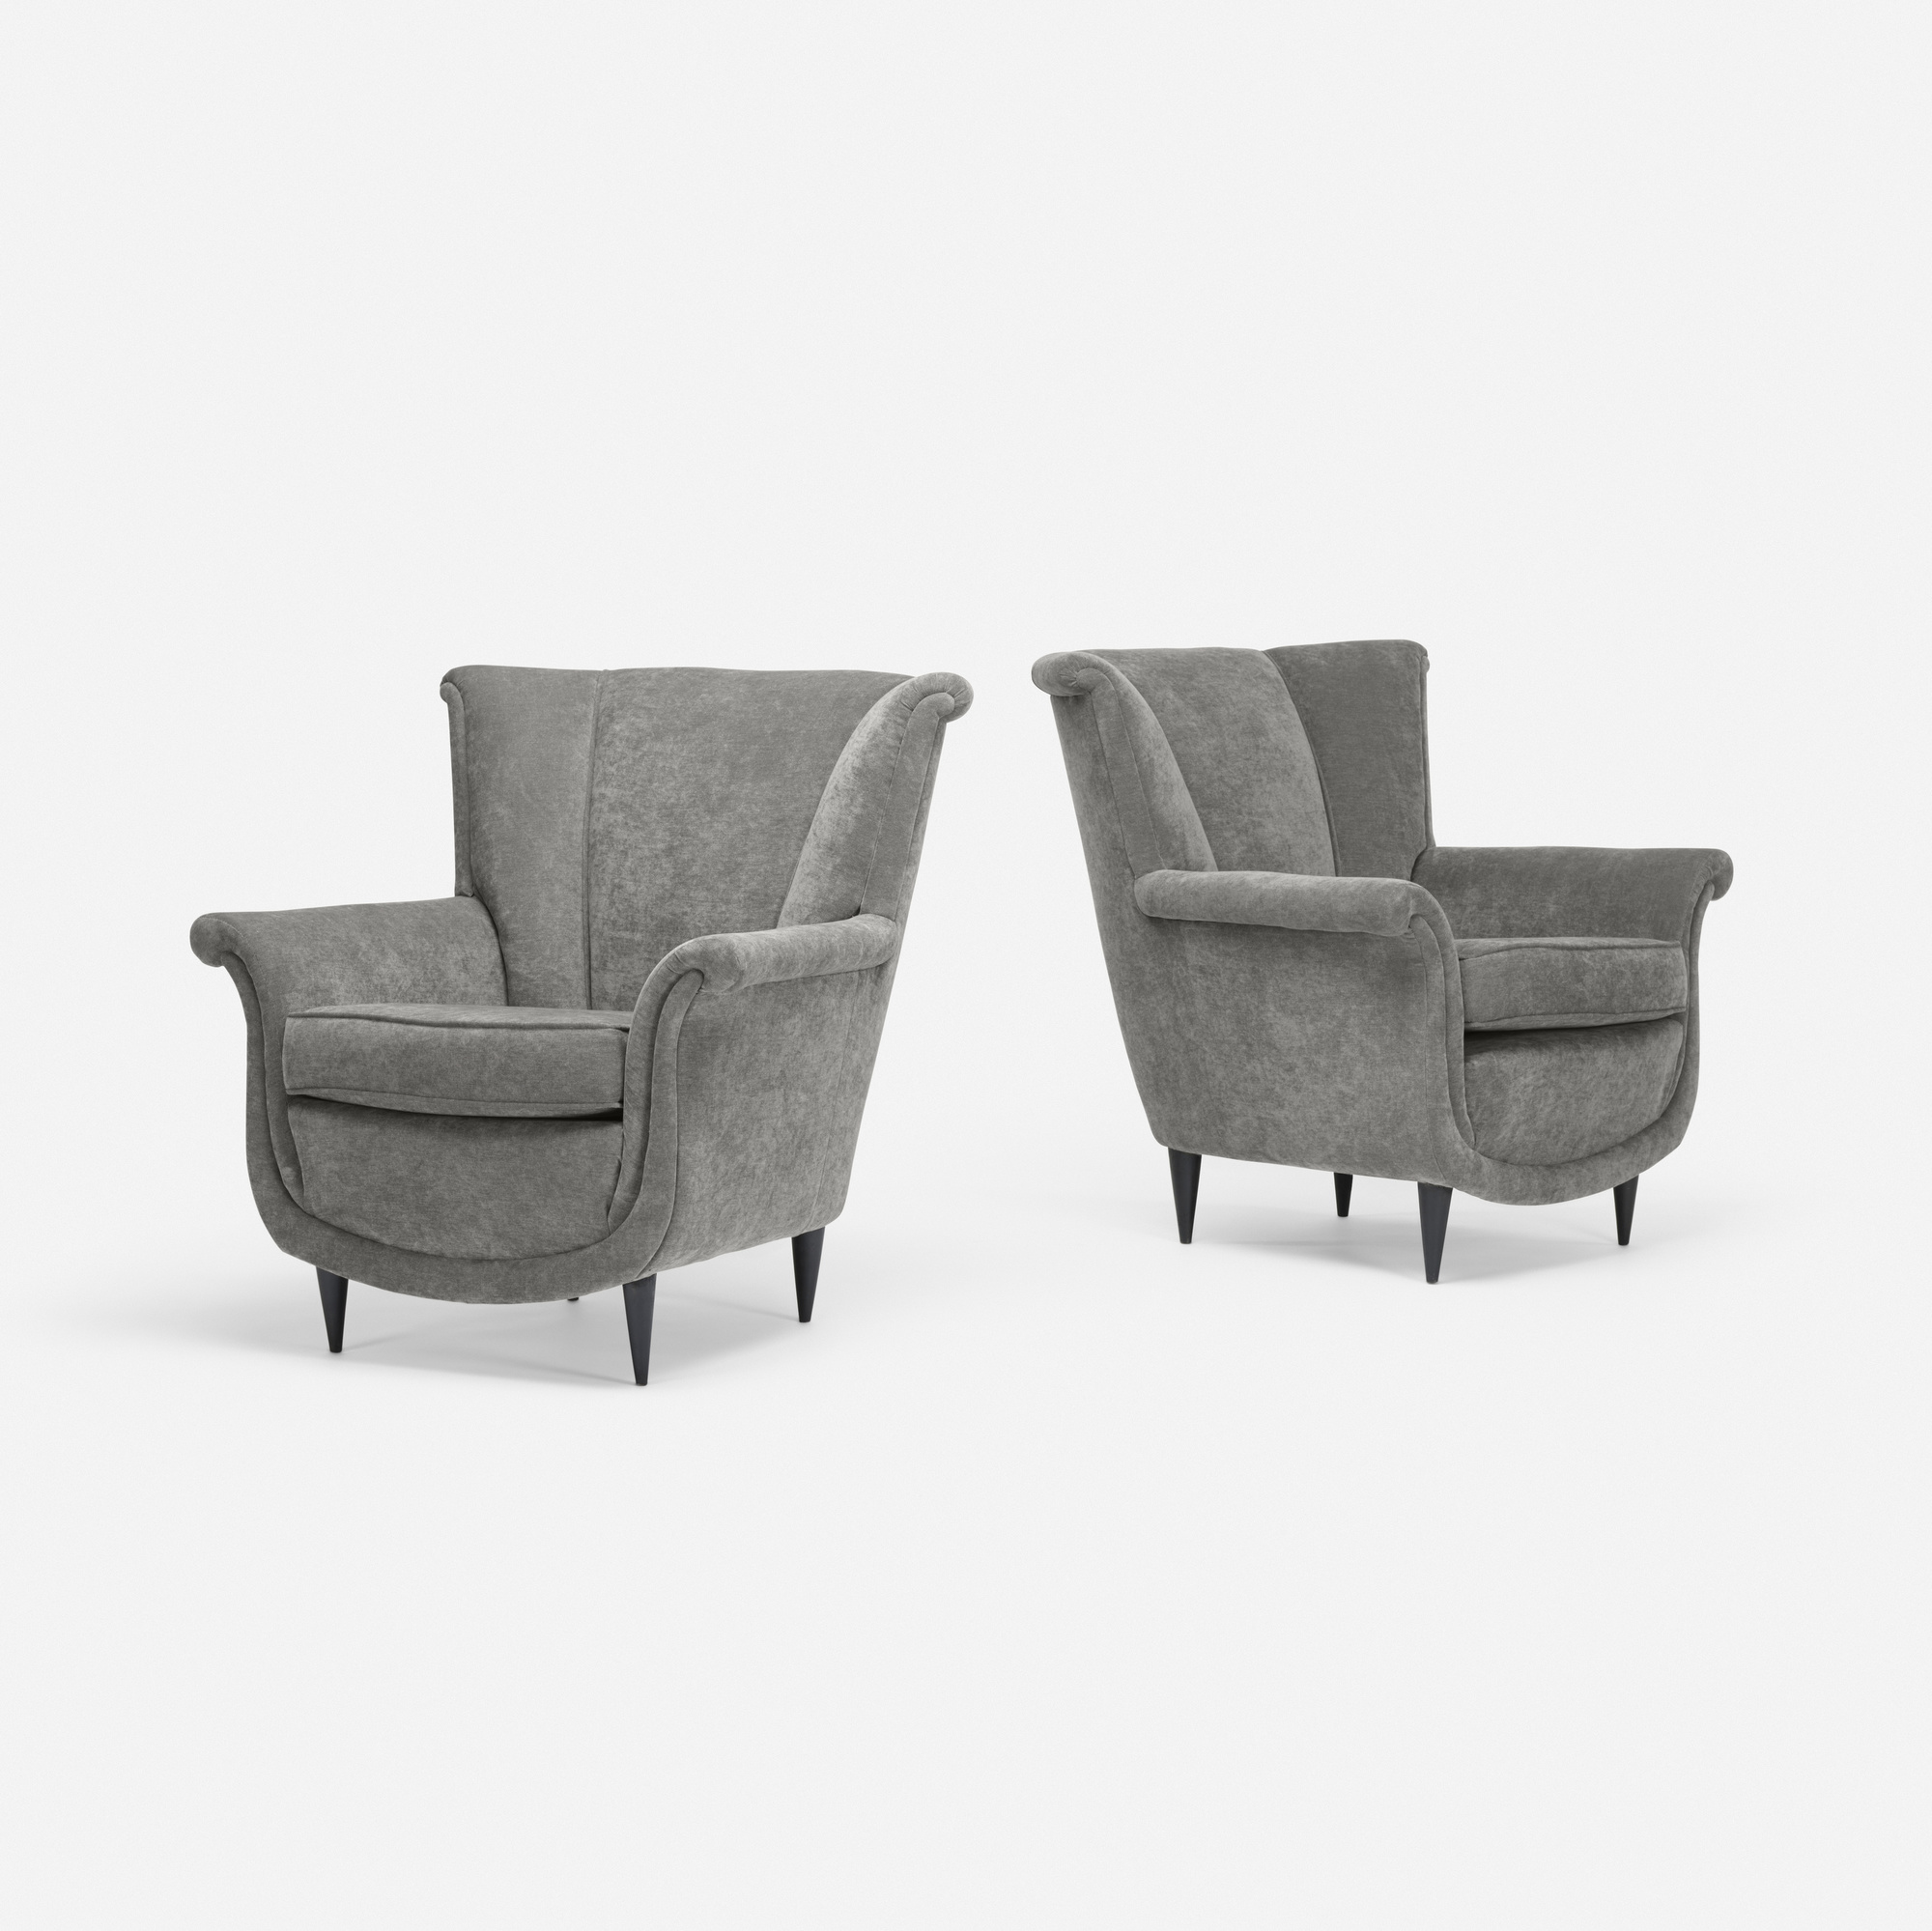 137: Italian / lounge chairs, pair (1 of 2)